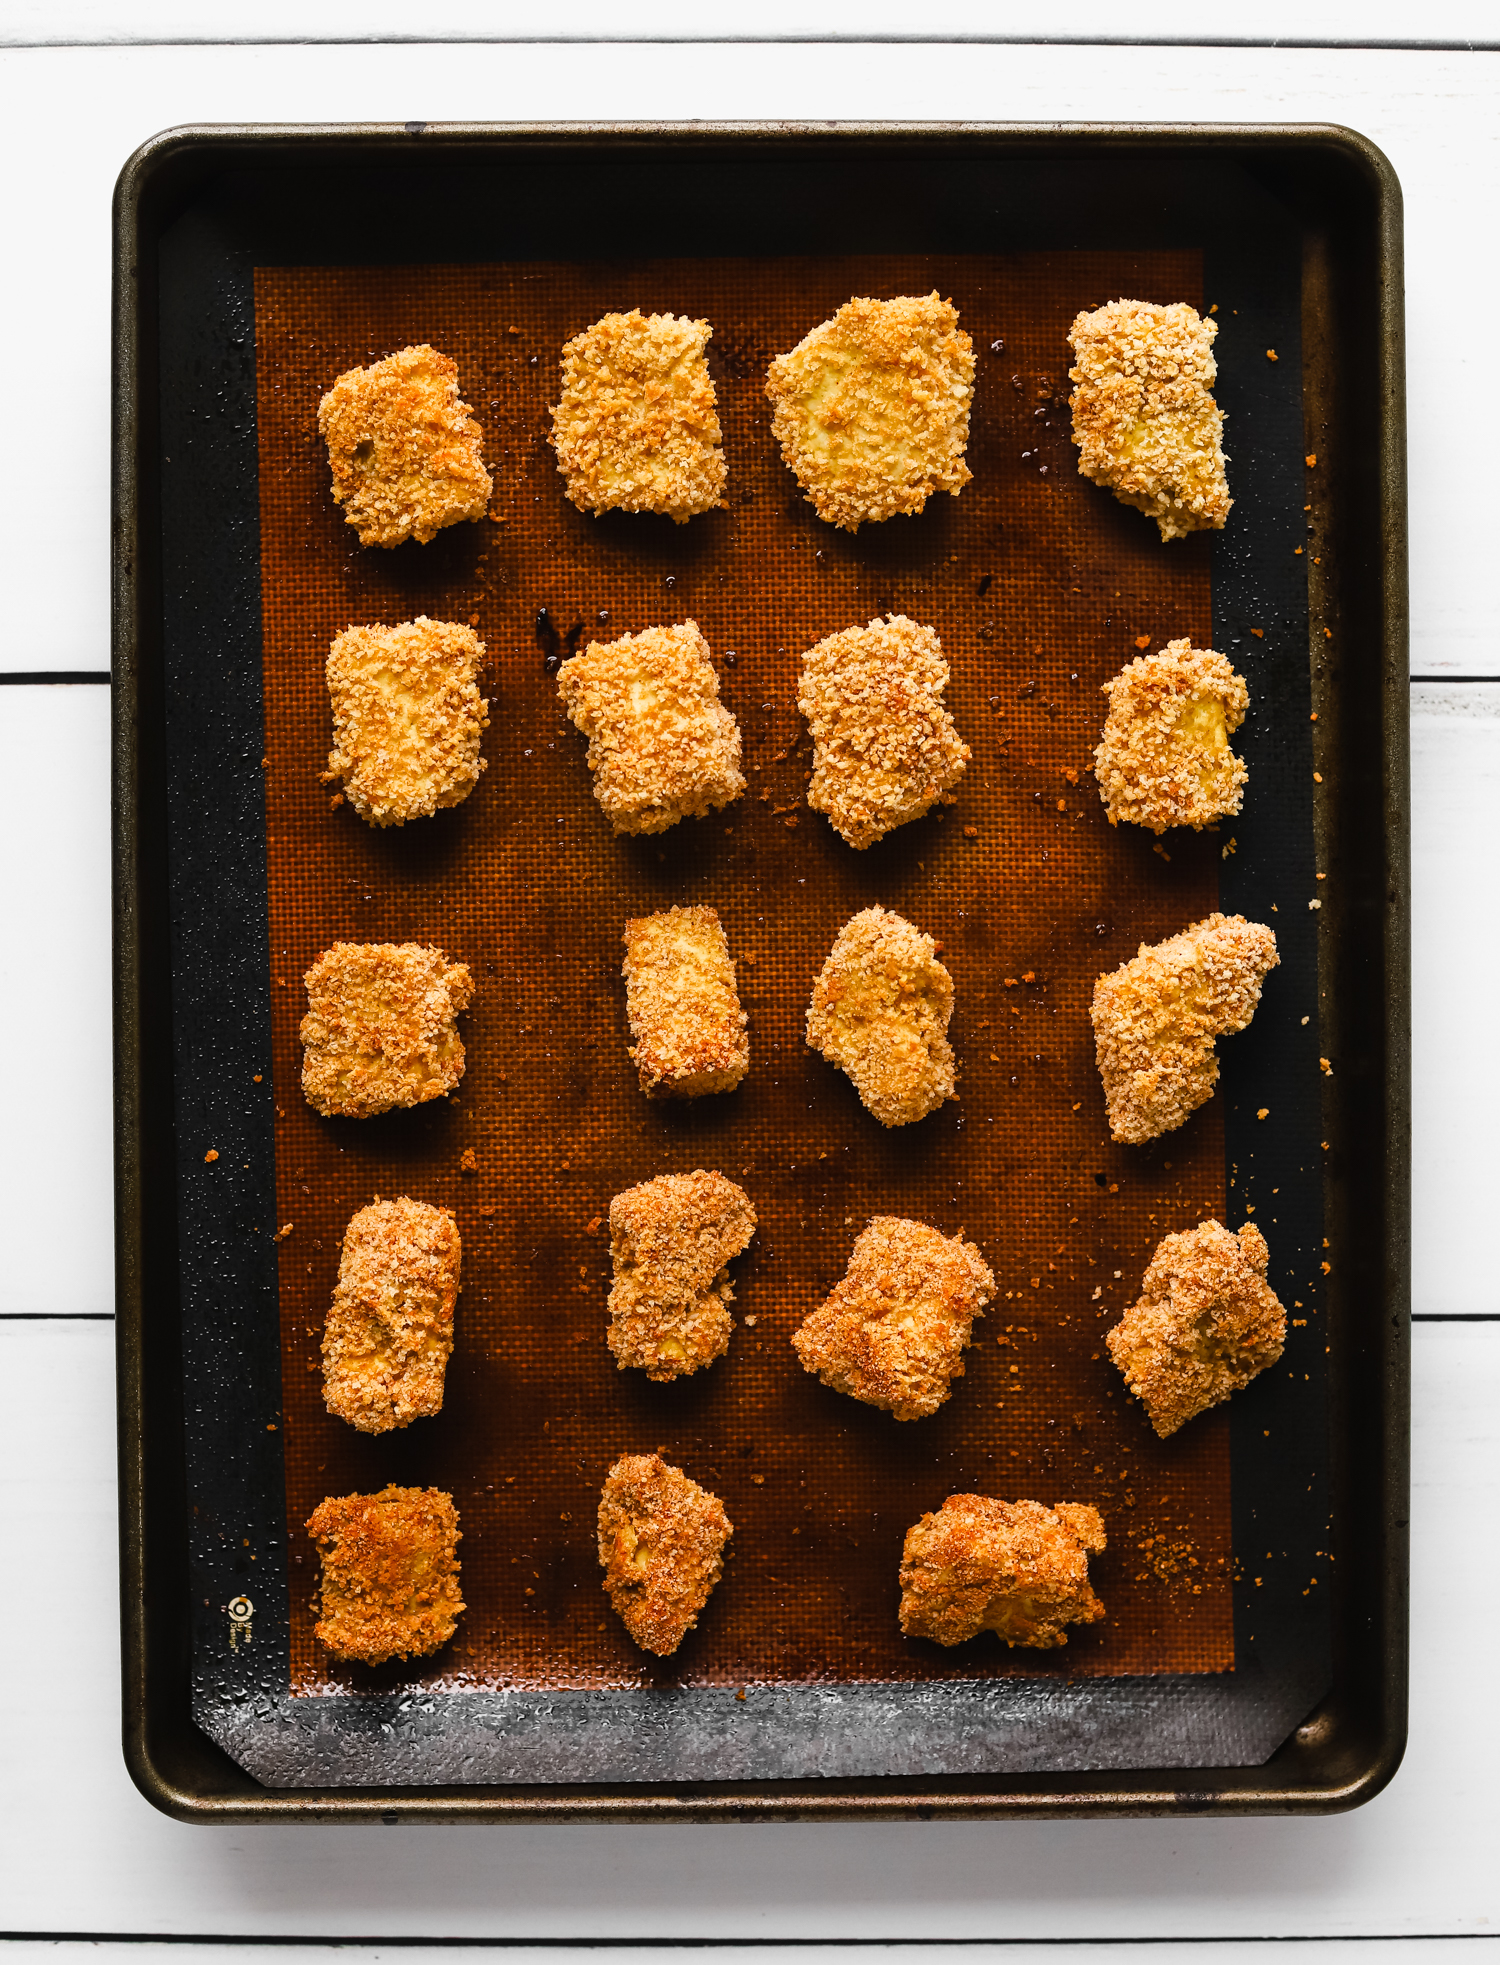 Baked breaded tofu chicken nuggets on a baking tray lined with a reusable silicone mat.